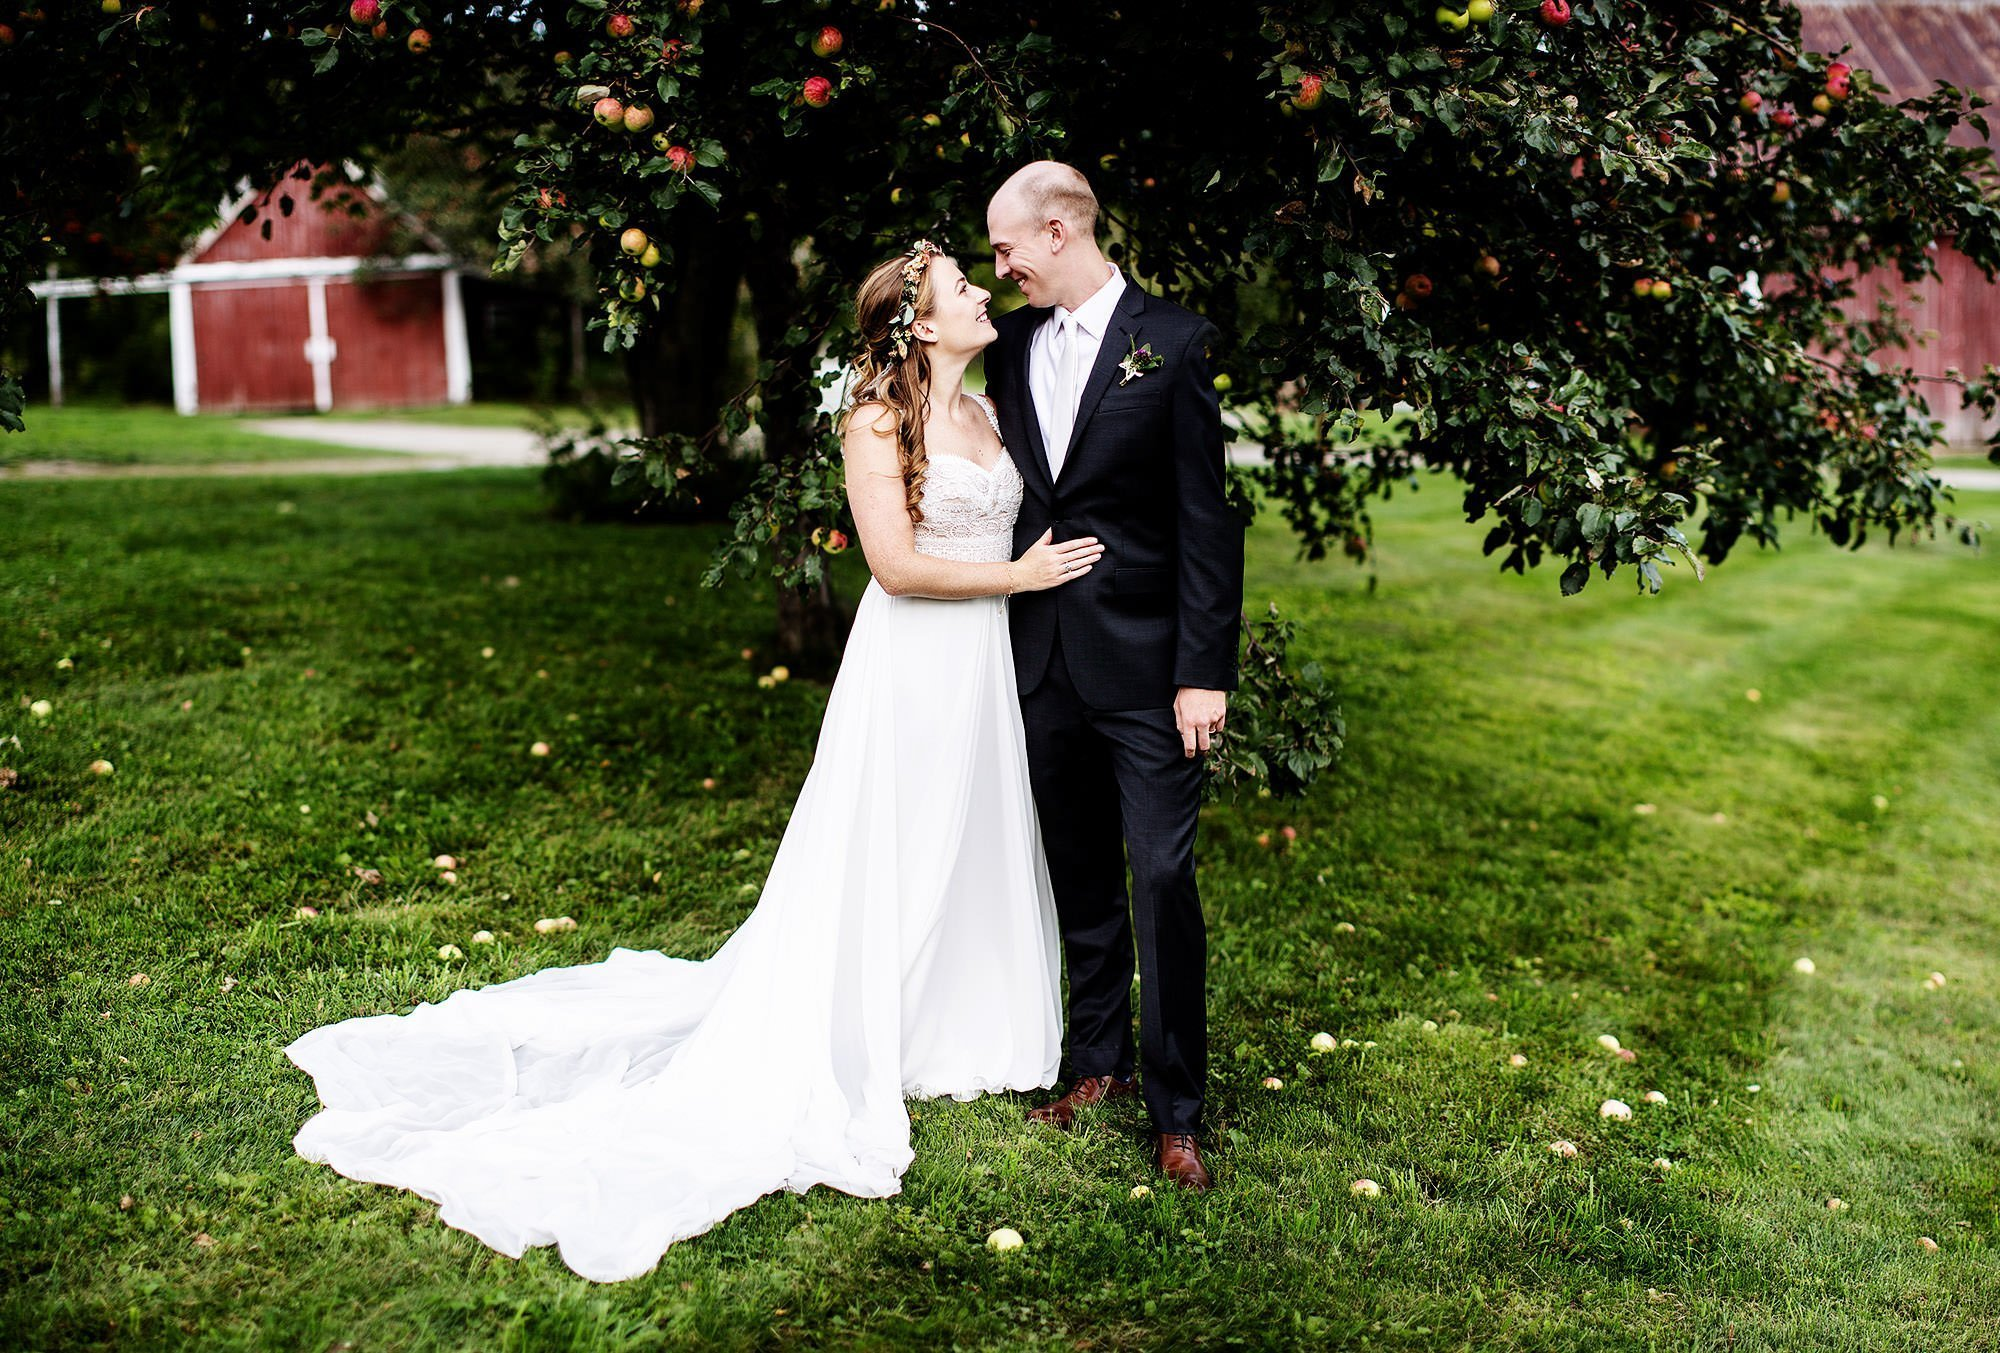 Vermont Family Farm Wedding  I  The bride and groom pose in front of an apple tree.